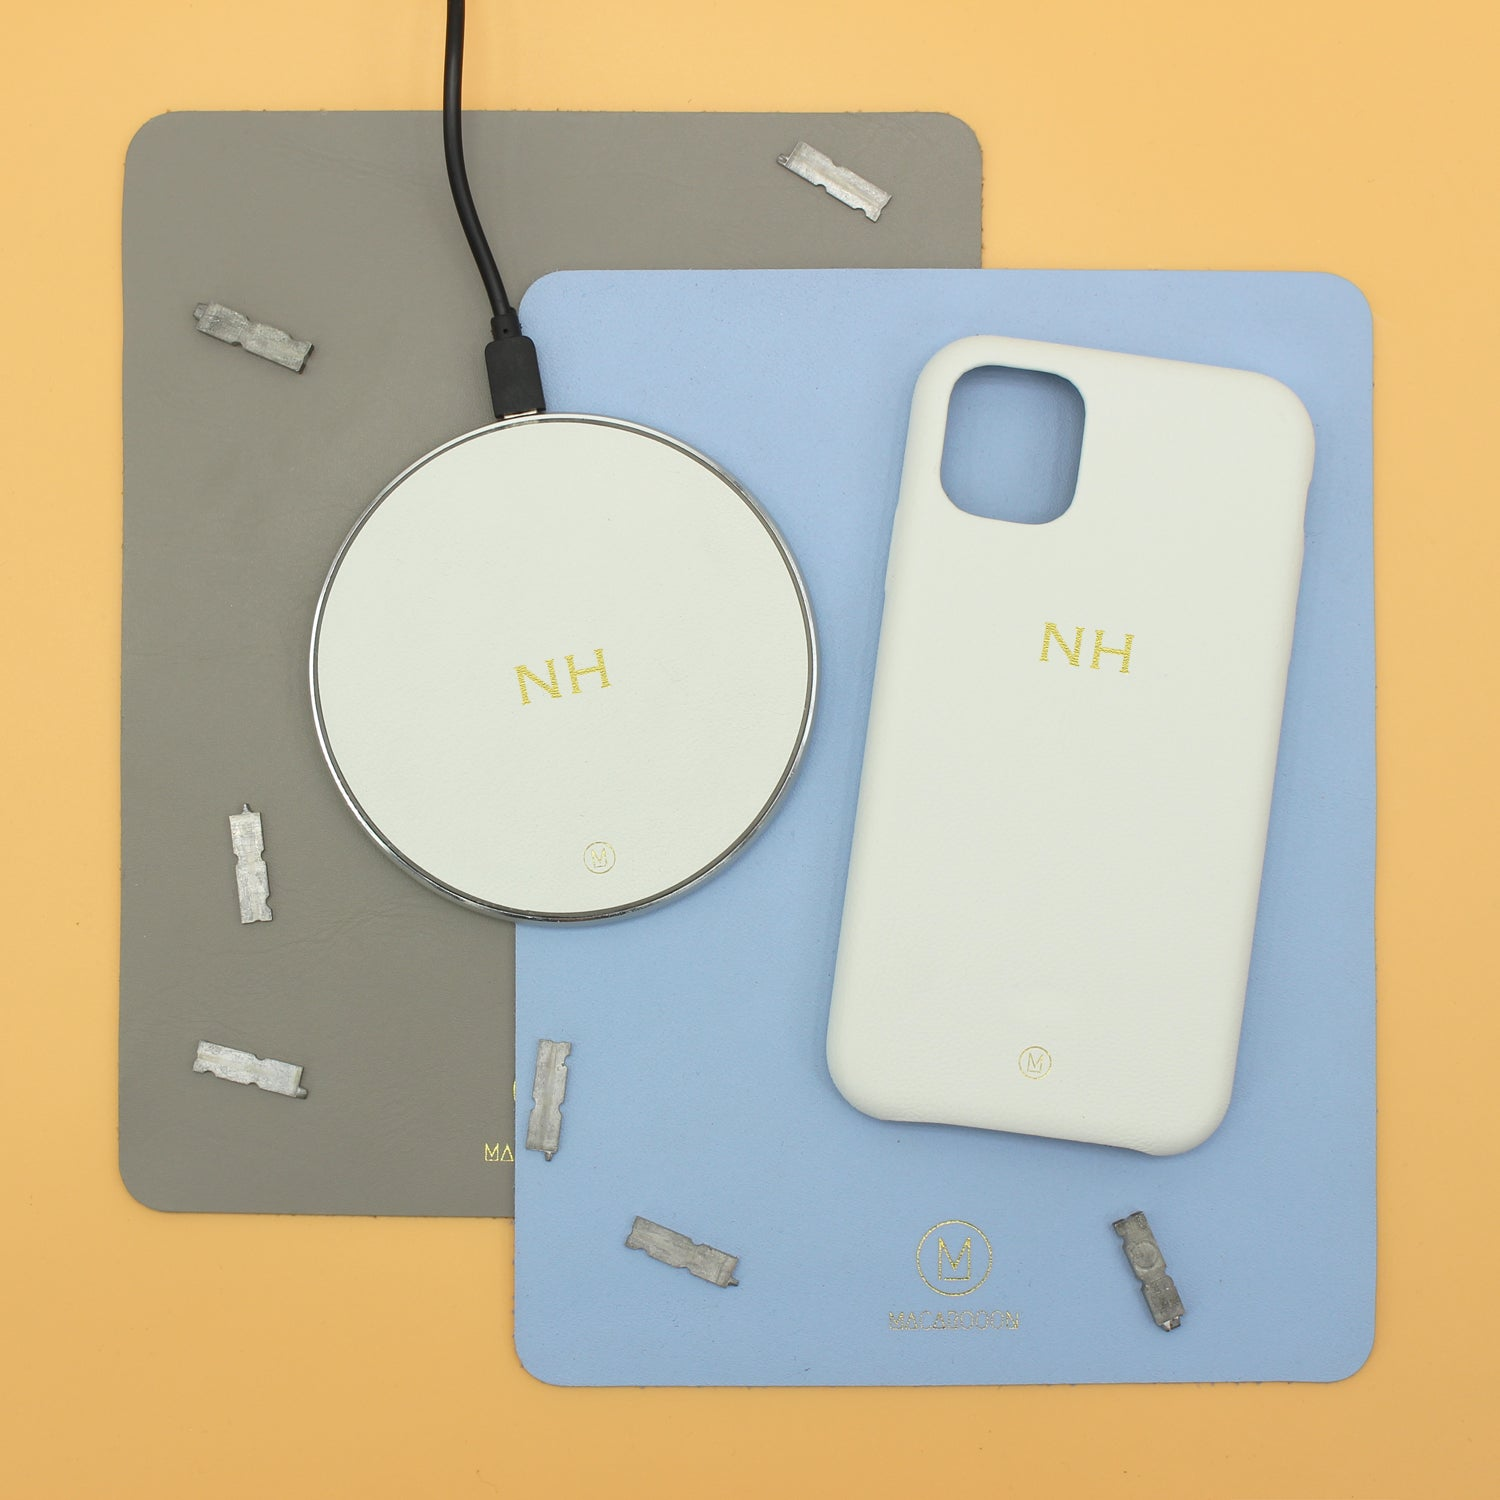 Bundle - iPhone Case + Wireless Charging Pad